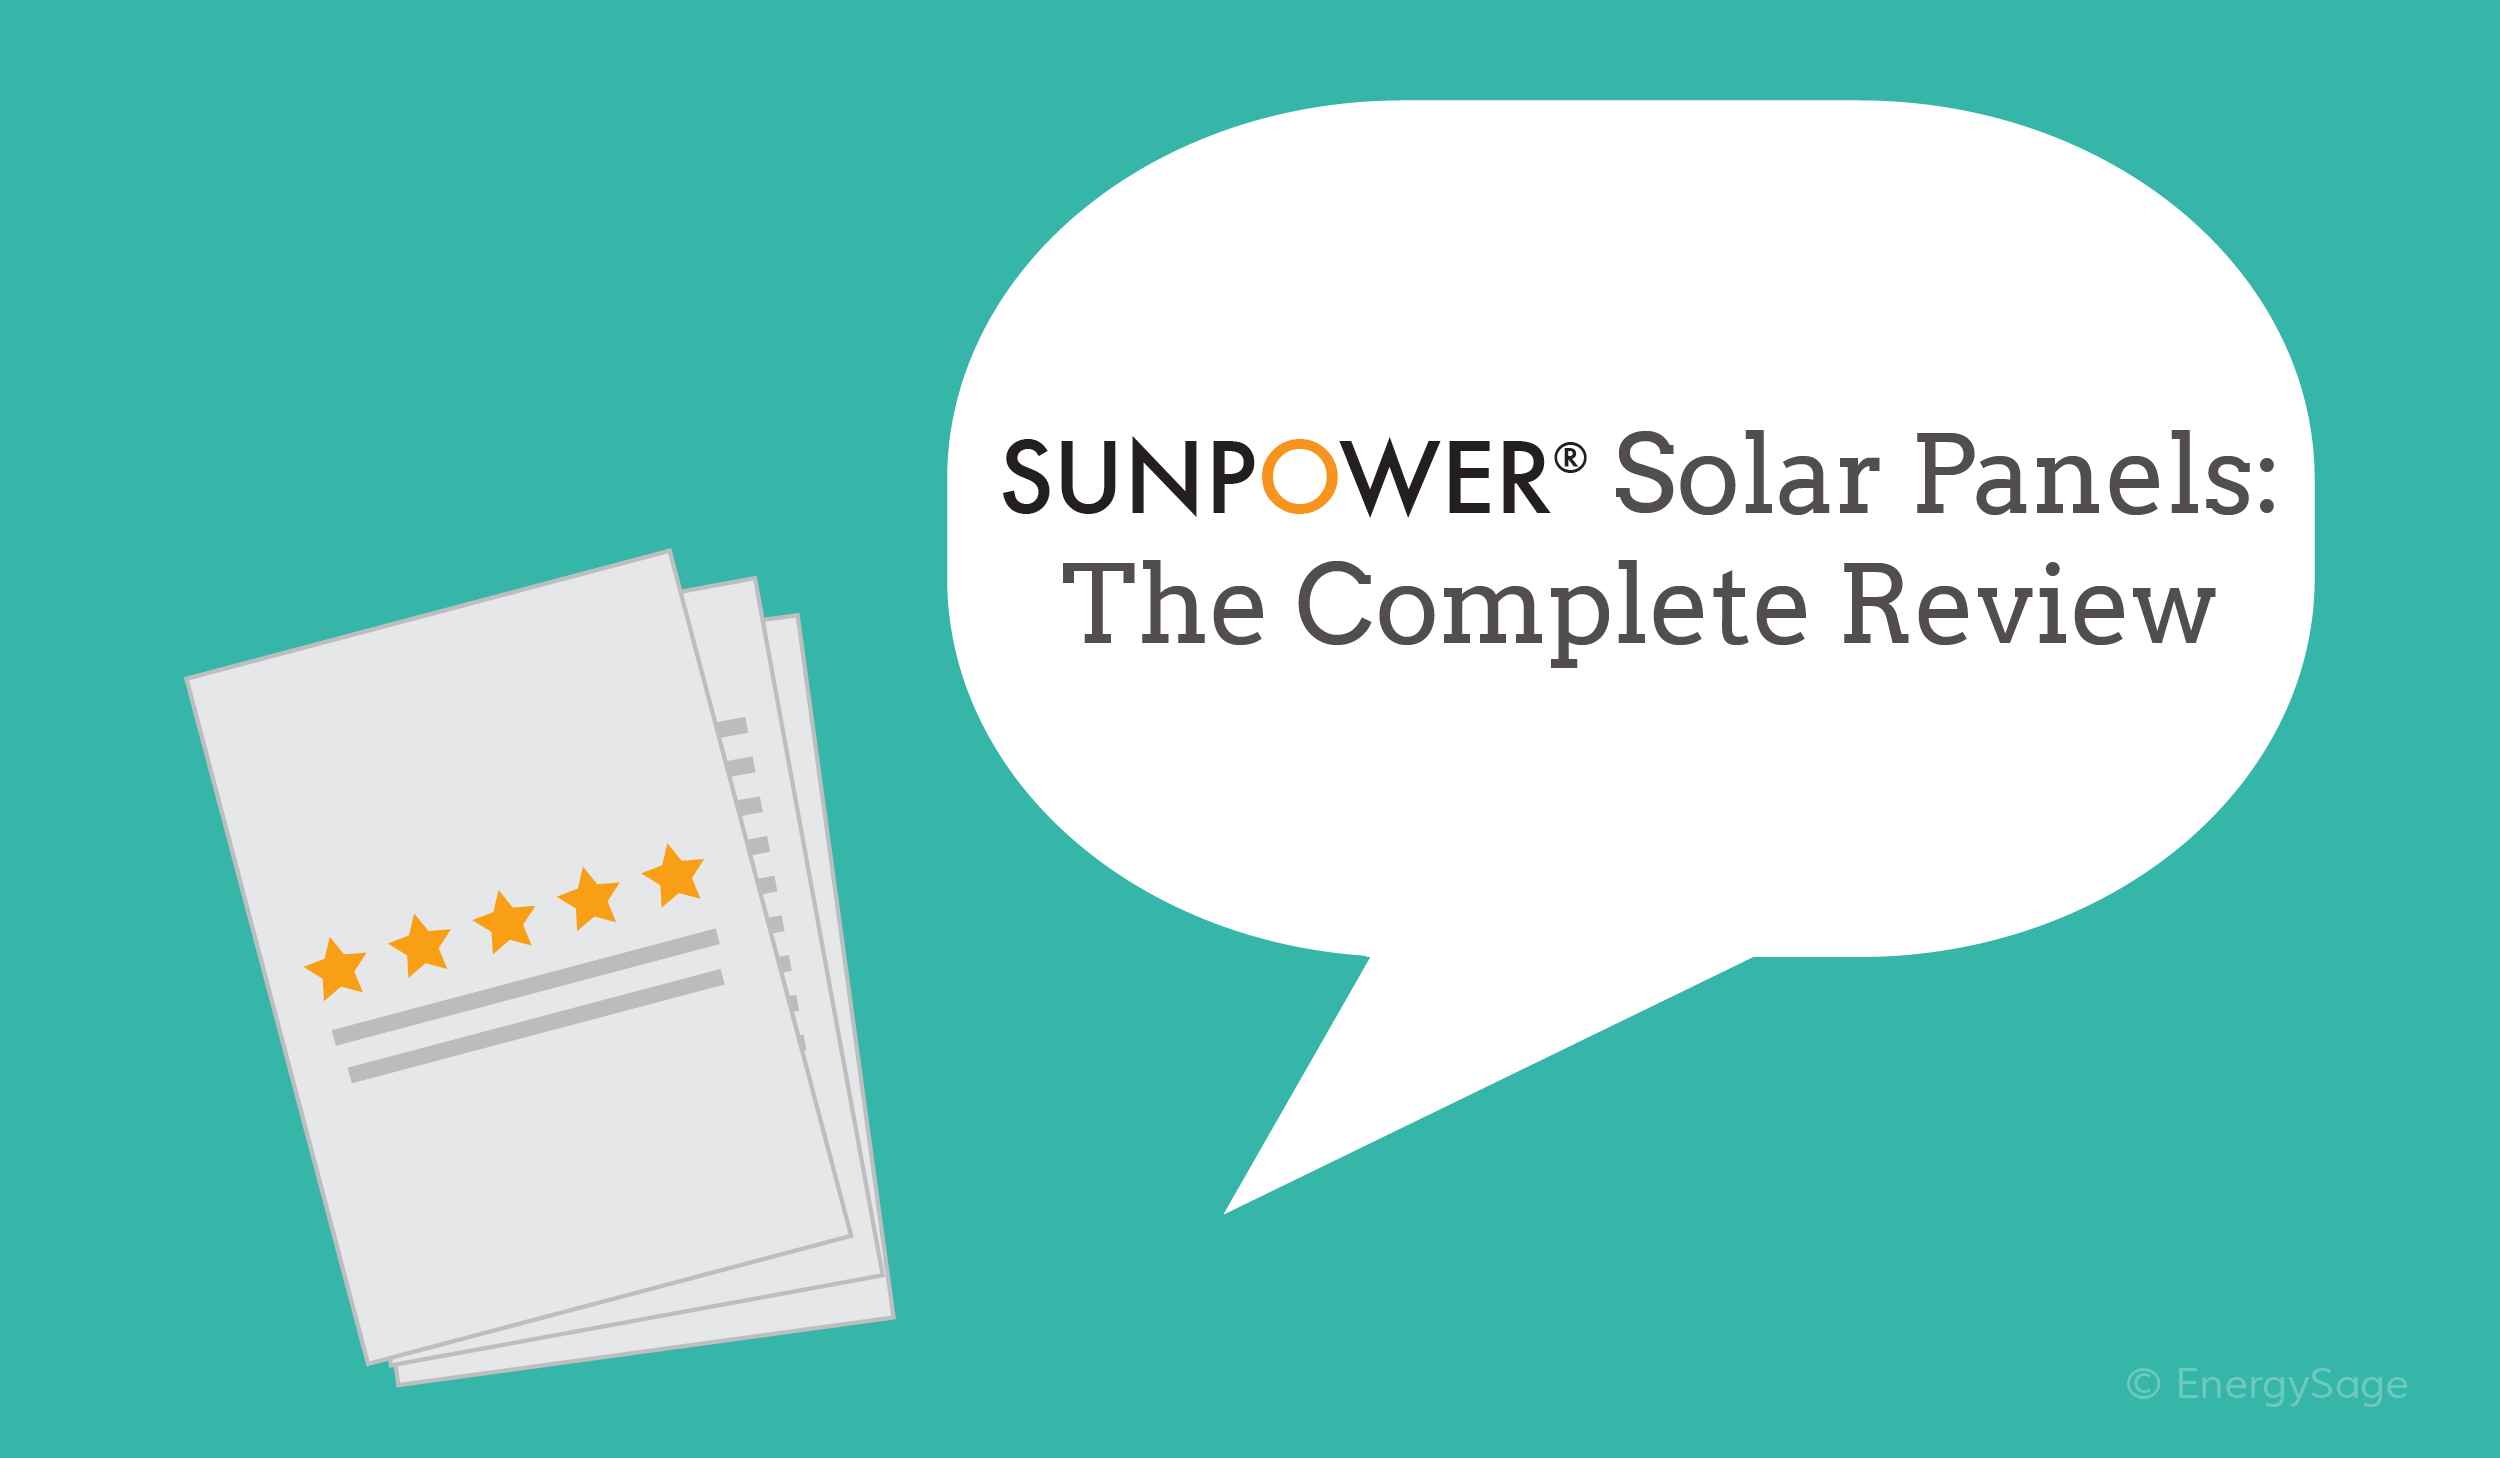 SunPower solar panels review